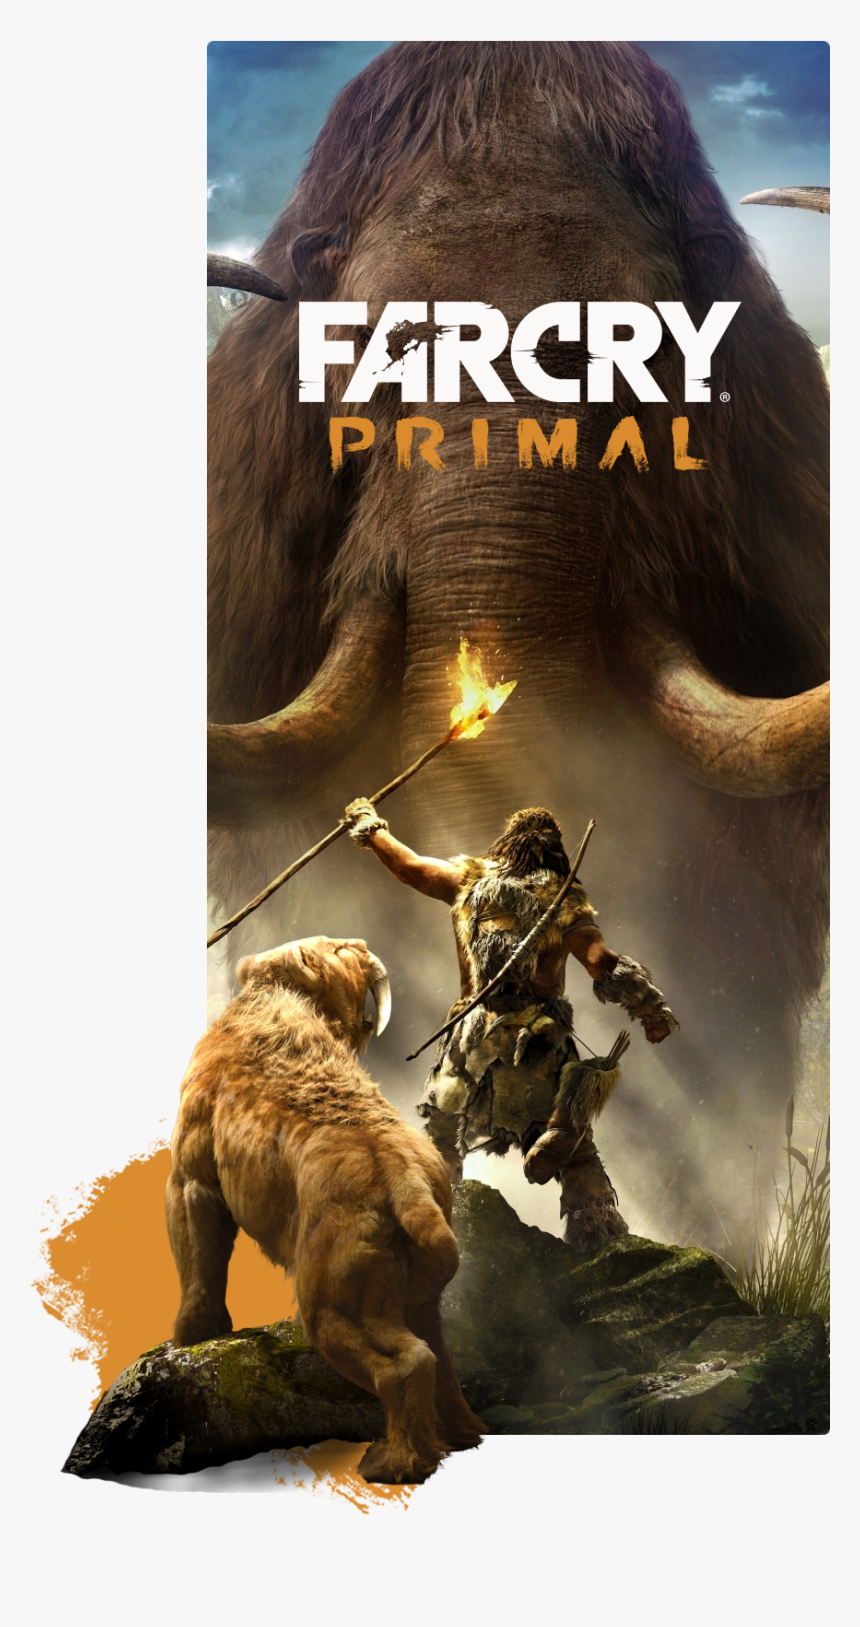 Far Cry Game Serial Number Far Cry Primal Wallpaper Download Hd Png Download Kindpng